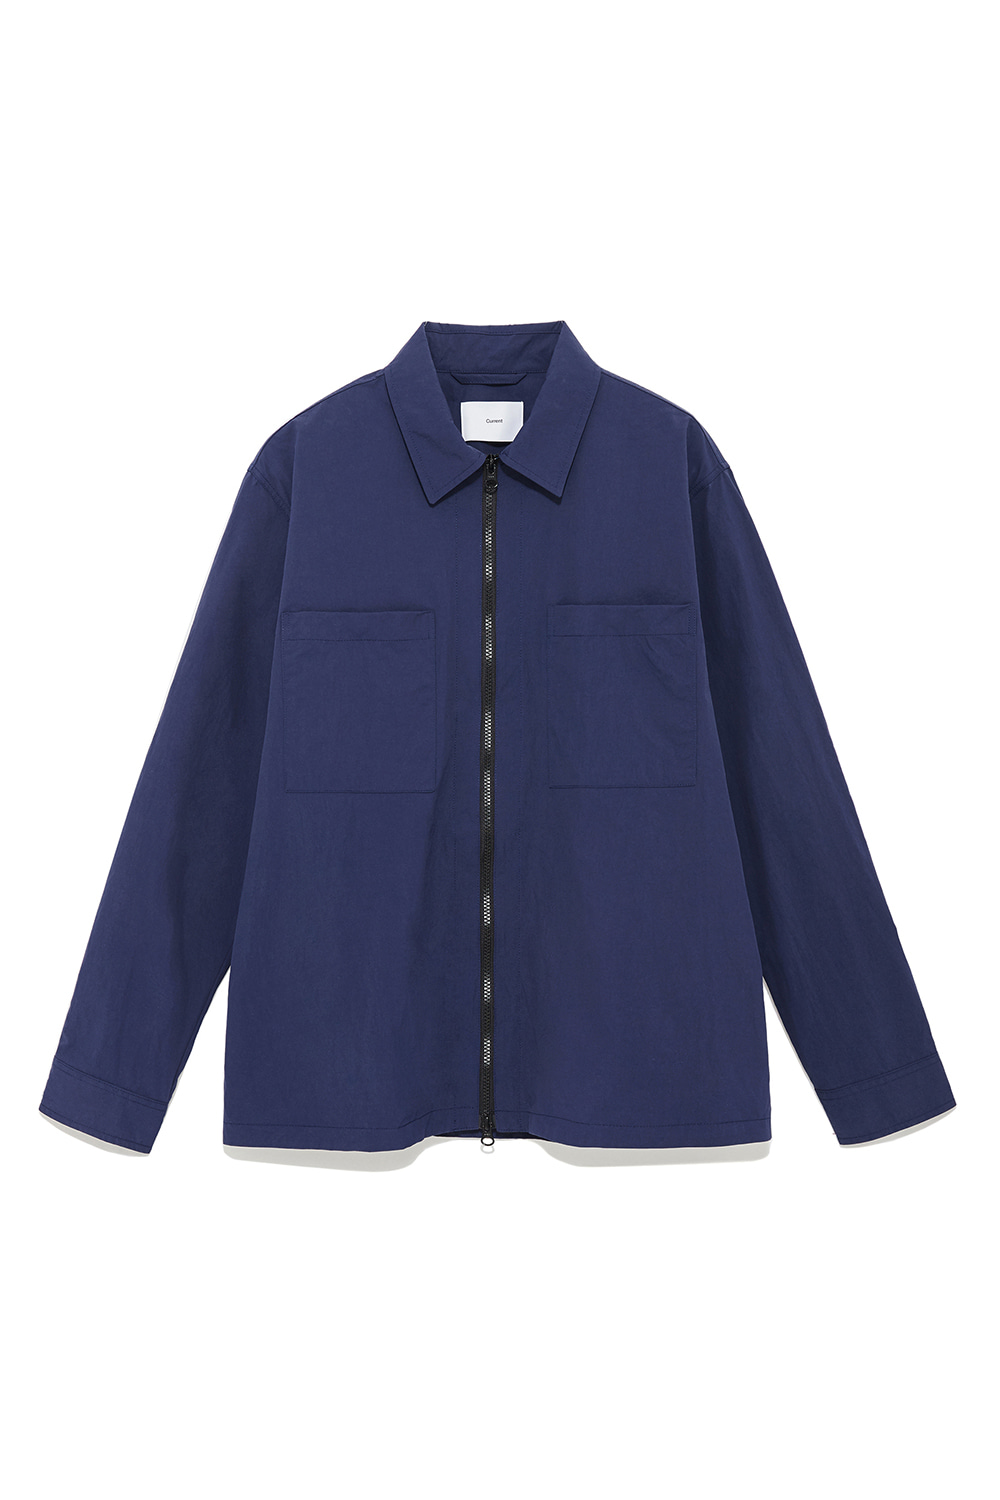 Zip Up Shirts Men [Blue]